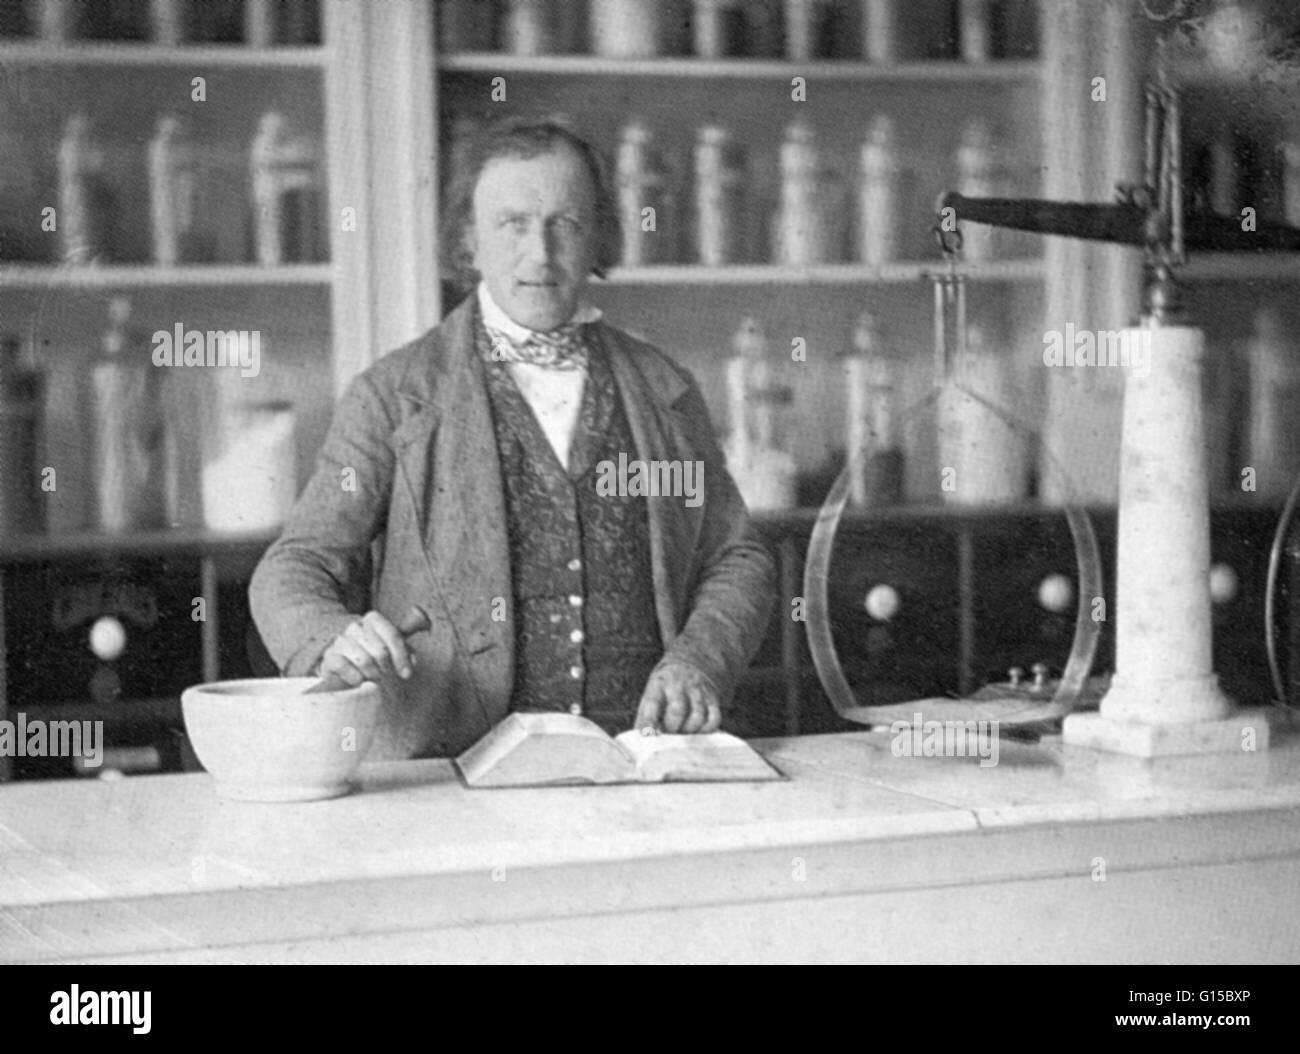 A daguerreotype from 1852 showing a chemist or apothecary at work in his shop. - Stock Image